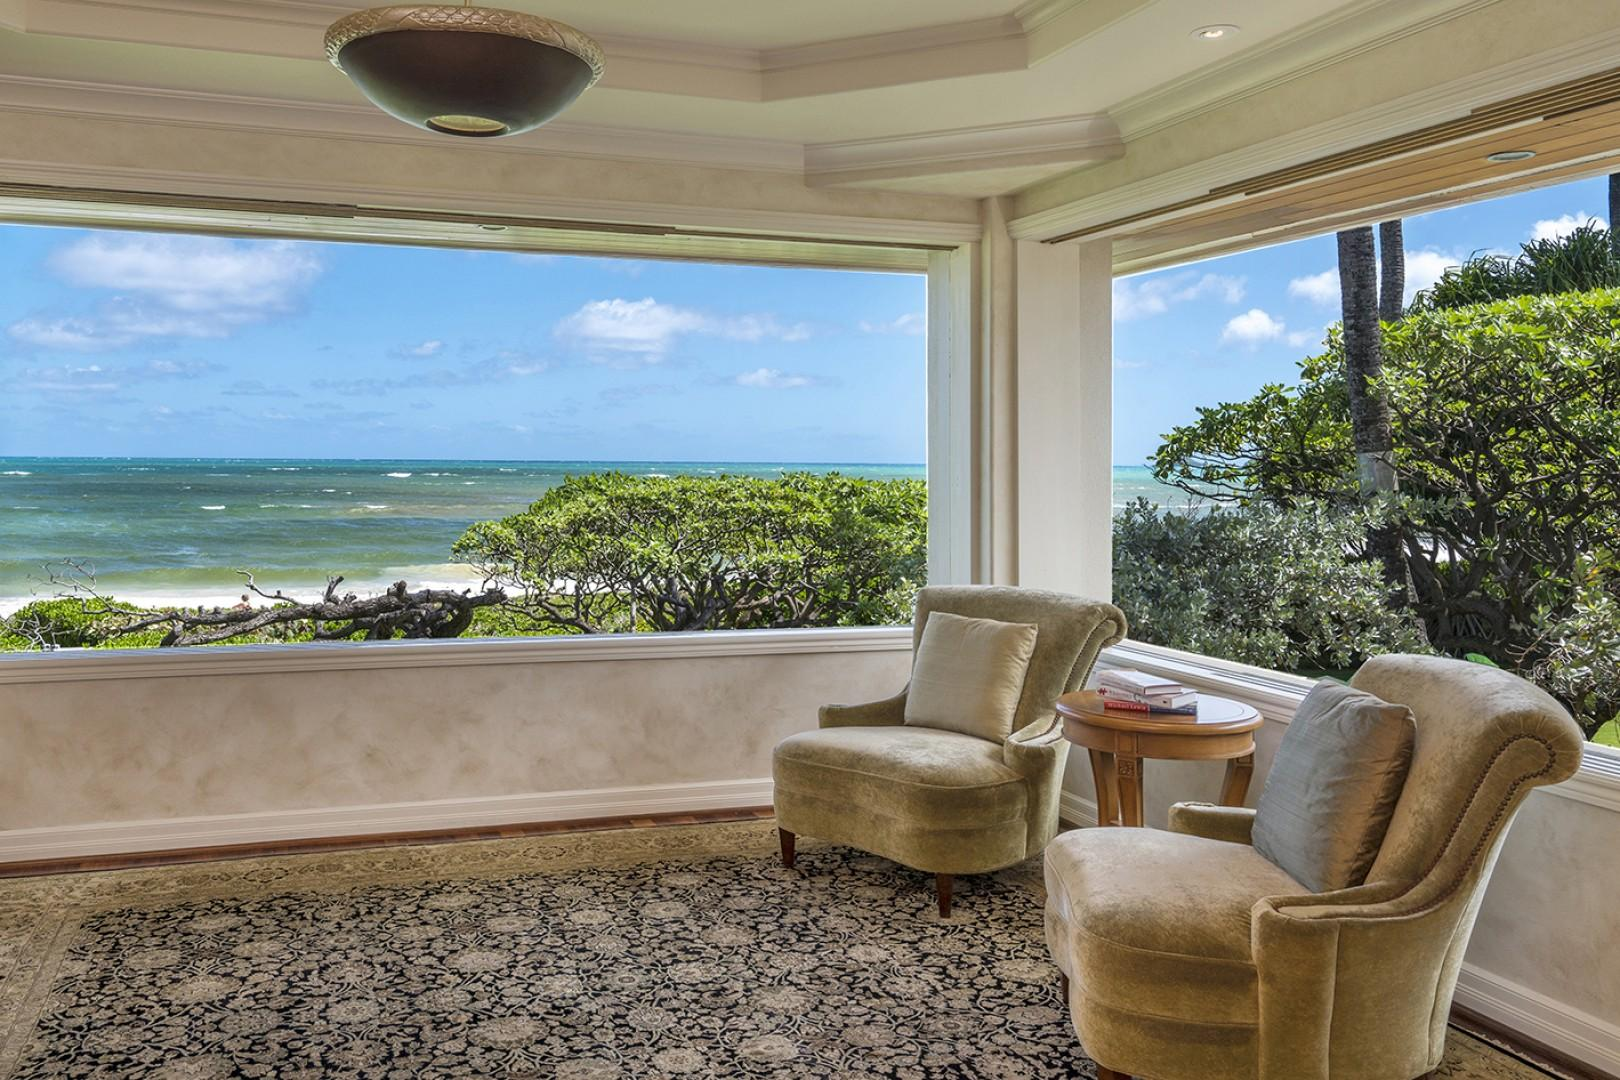 Main house: Windows fully open and welcome the ocean breeze.